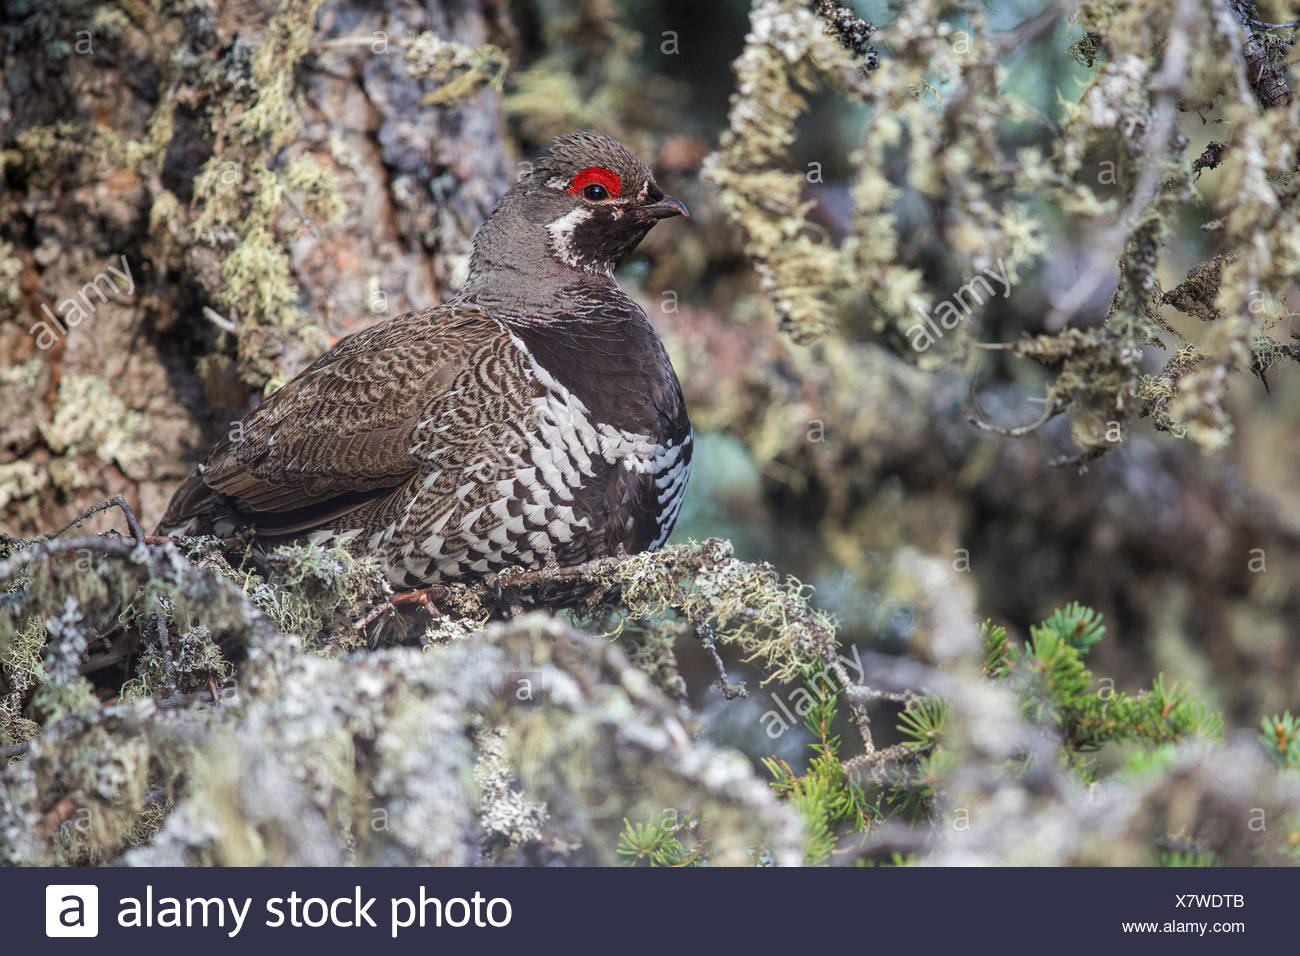 Spruce Grouse (Falcipennis canadensis) perched on a branch in Churchill, Manitoba, Canada. - Stock Image